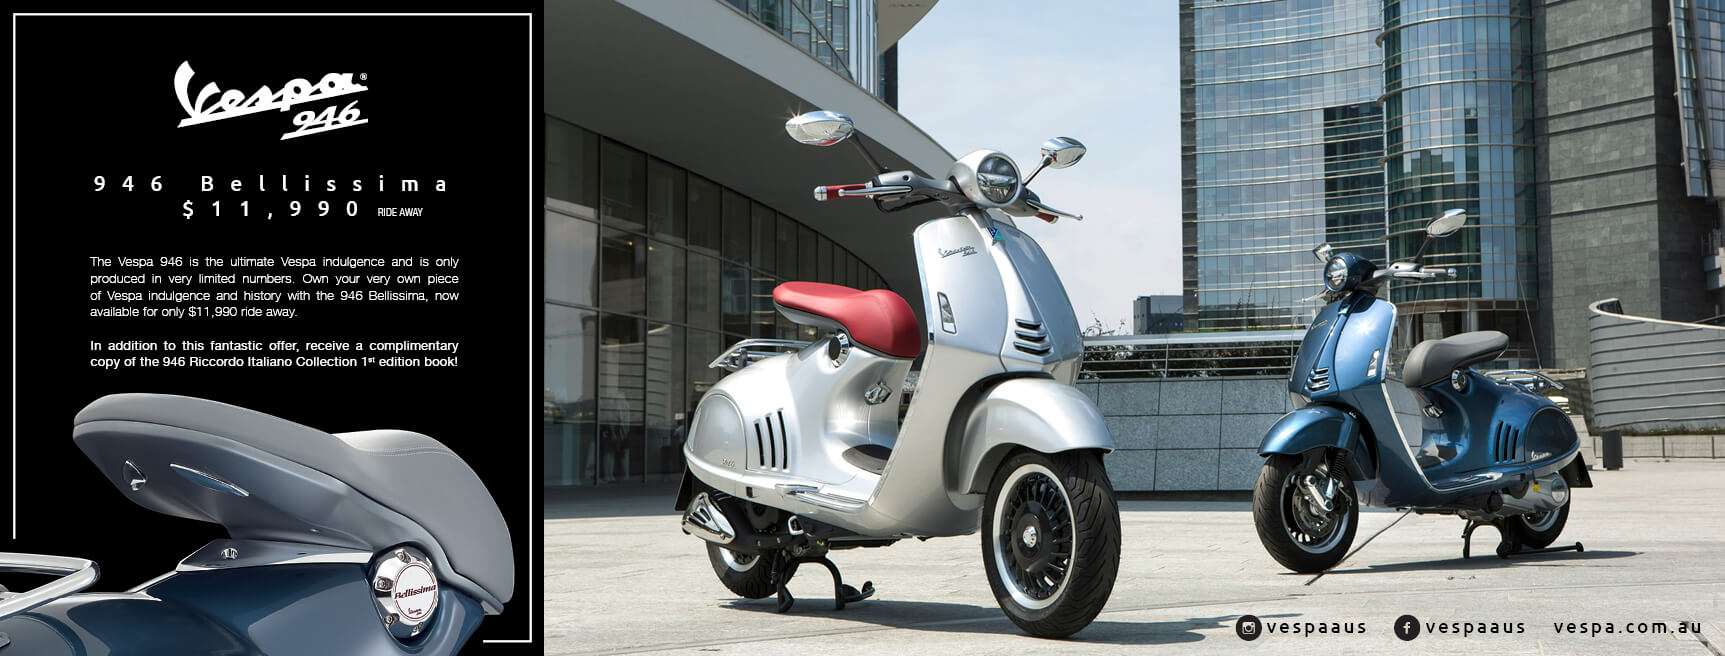 Indulge with the Vespa 946 Bellissima